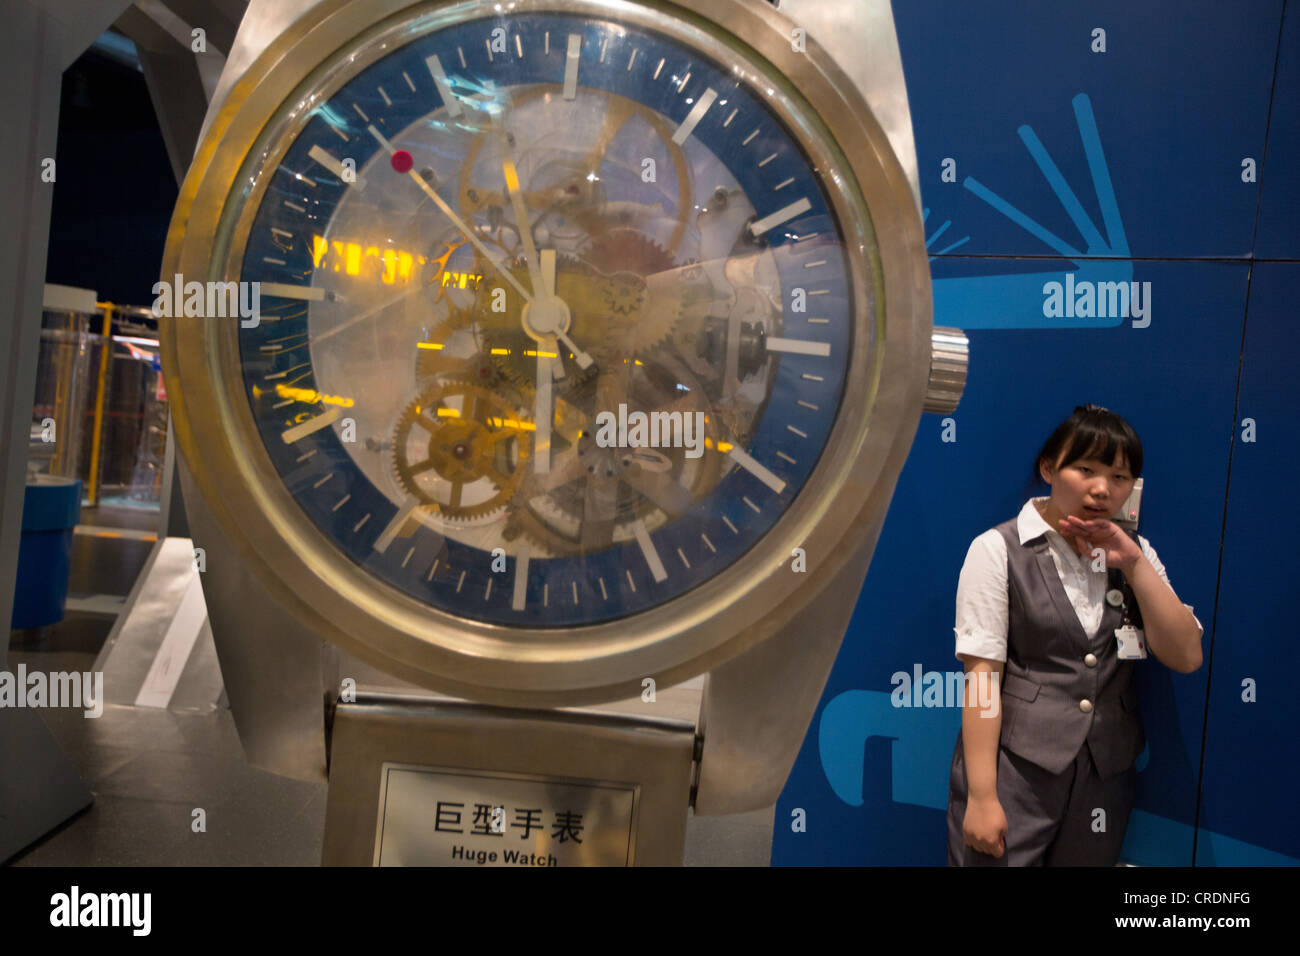 China Science and Technology Museum, in Beijing, China - Stock Image